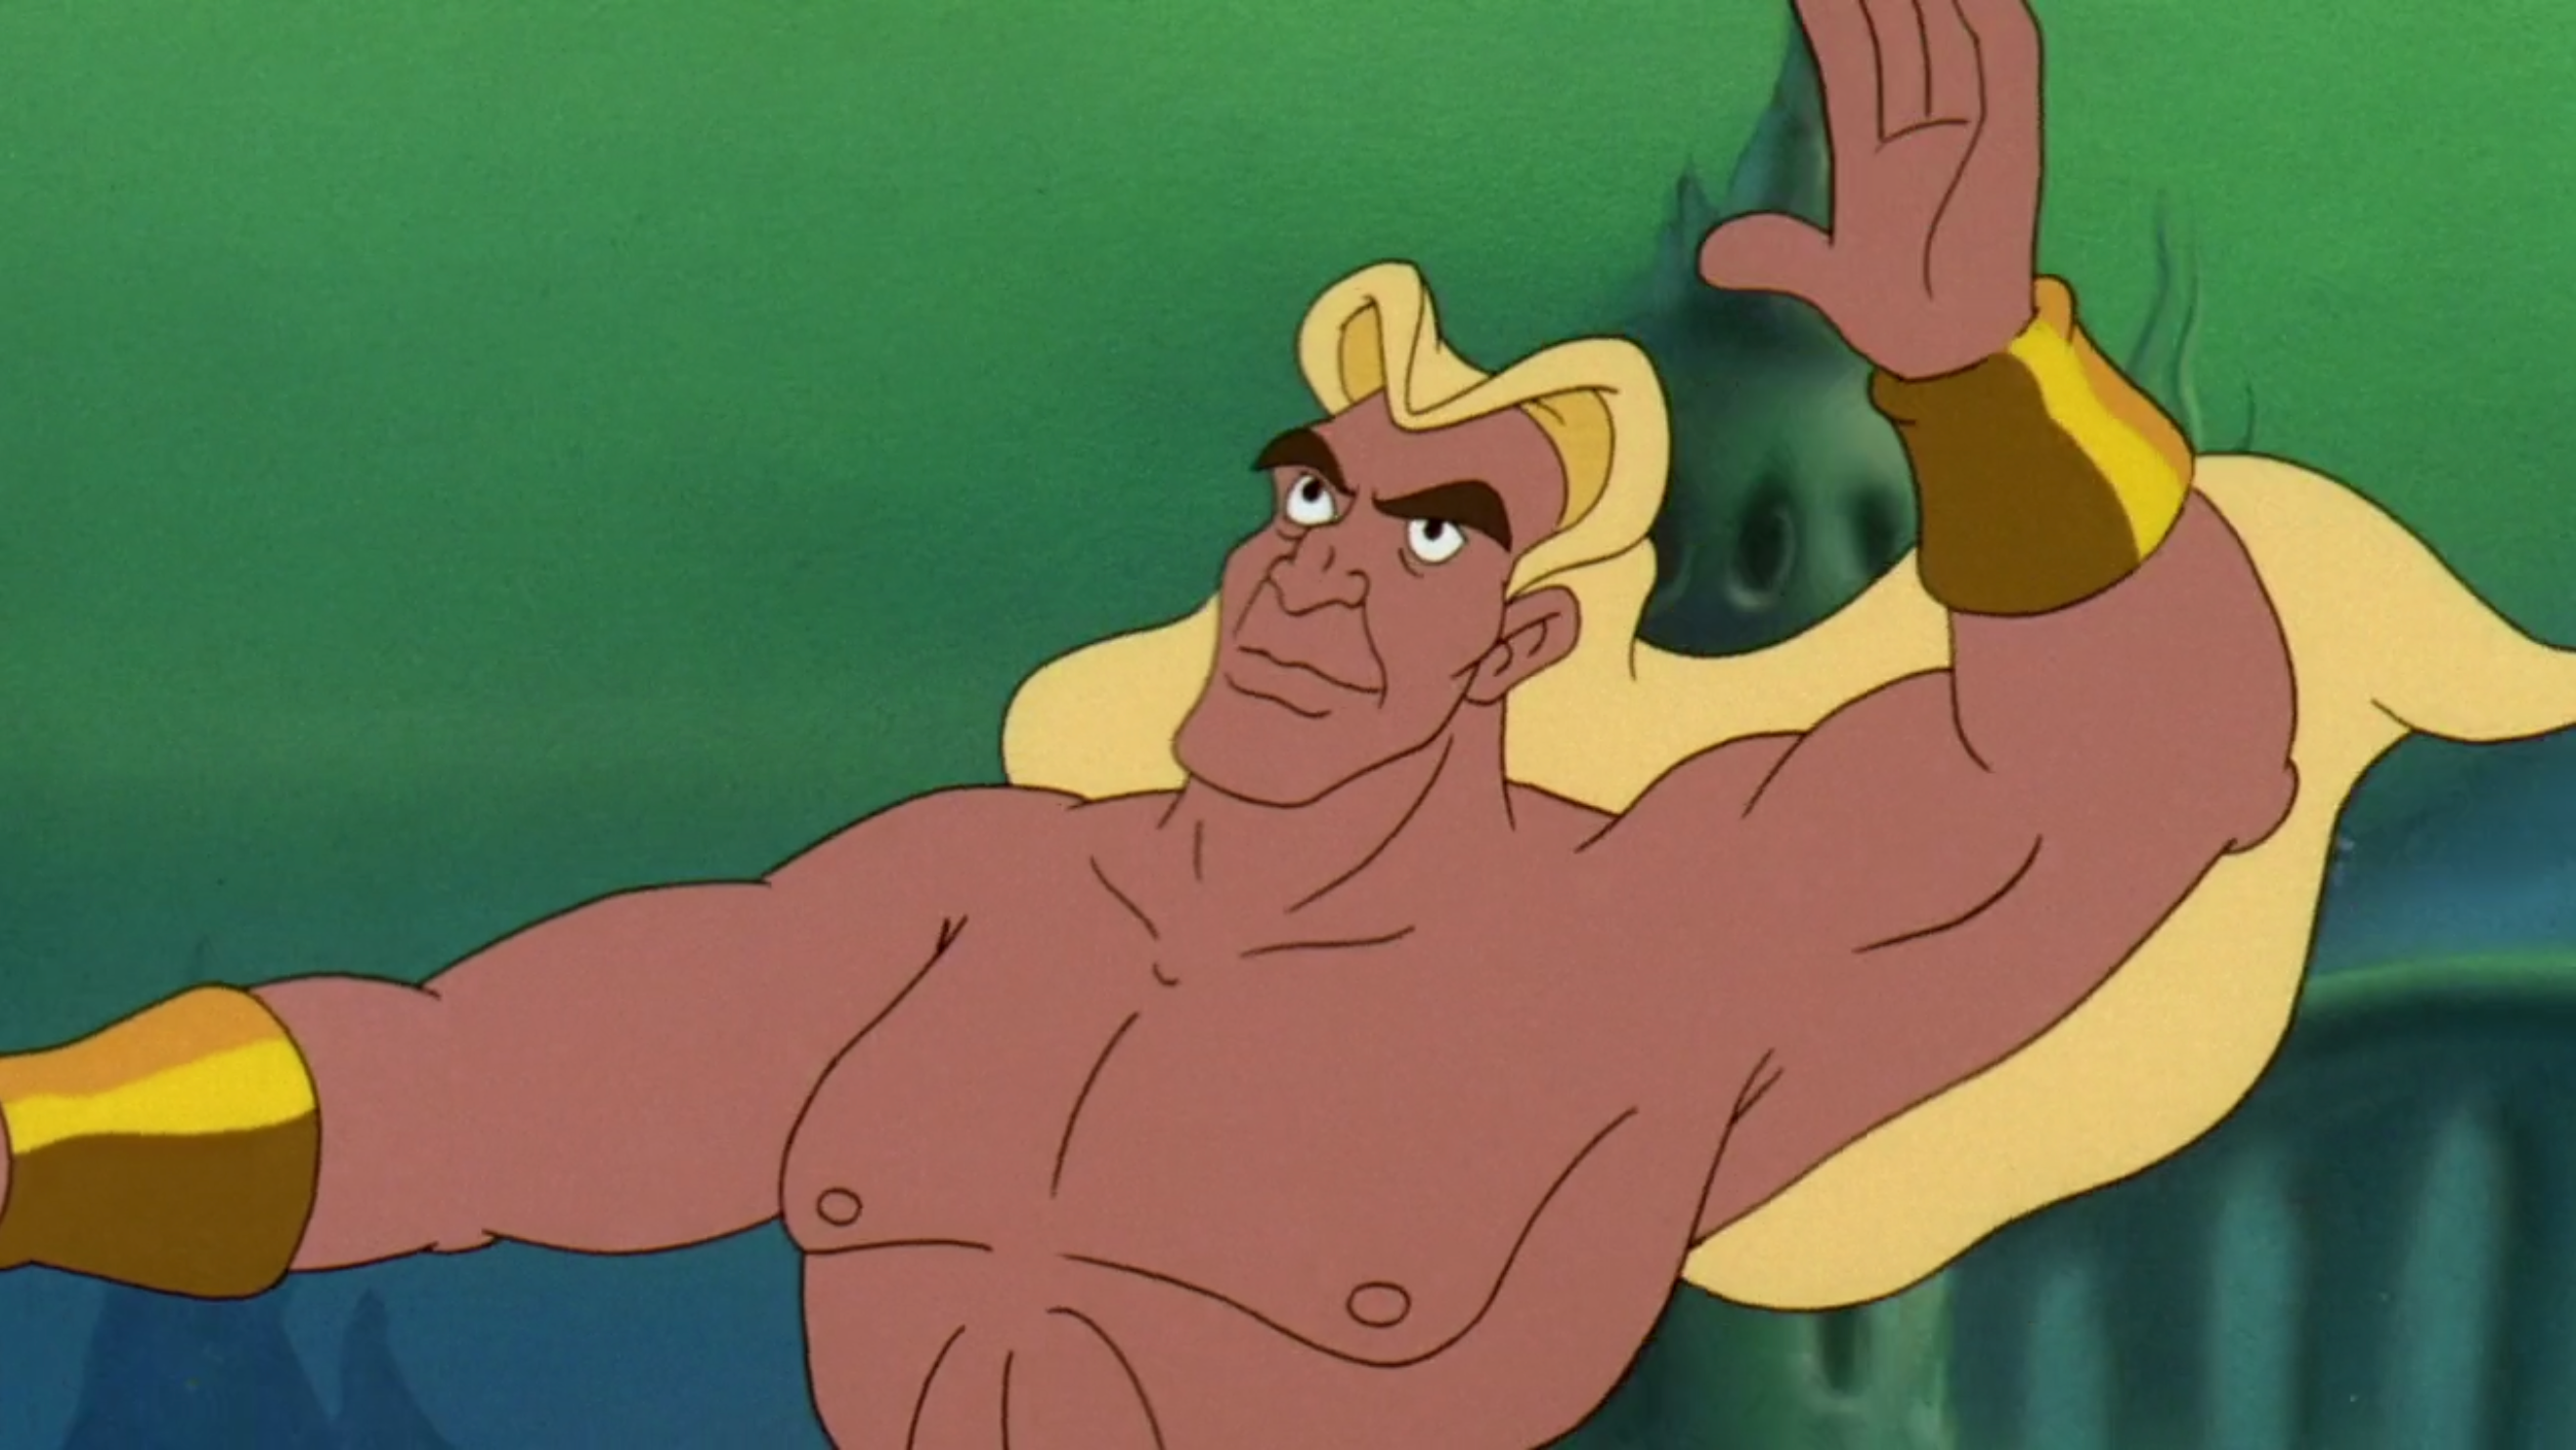 Apollo (The Little Mermaid)